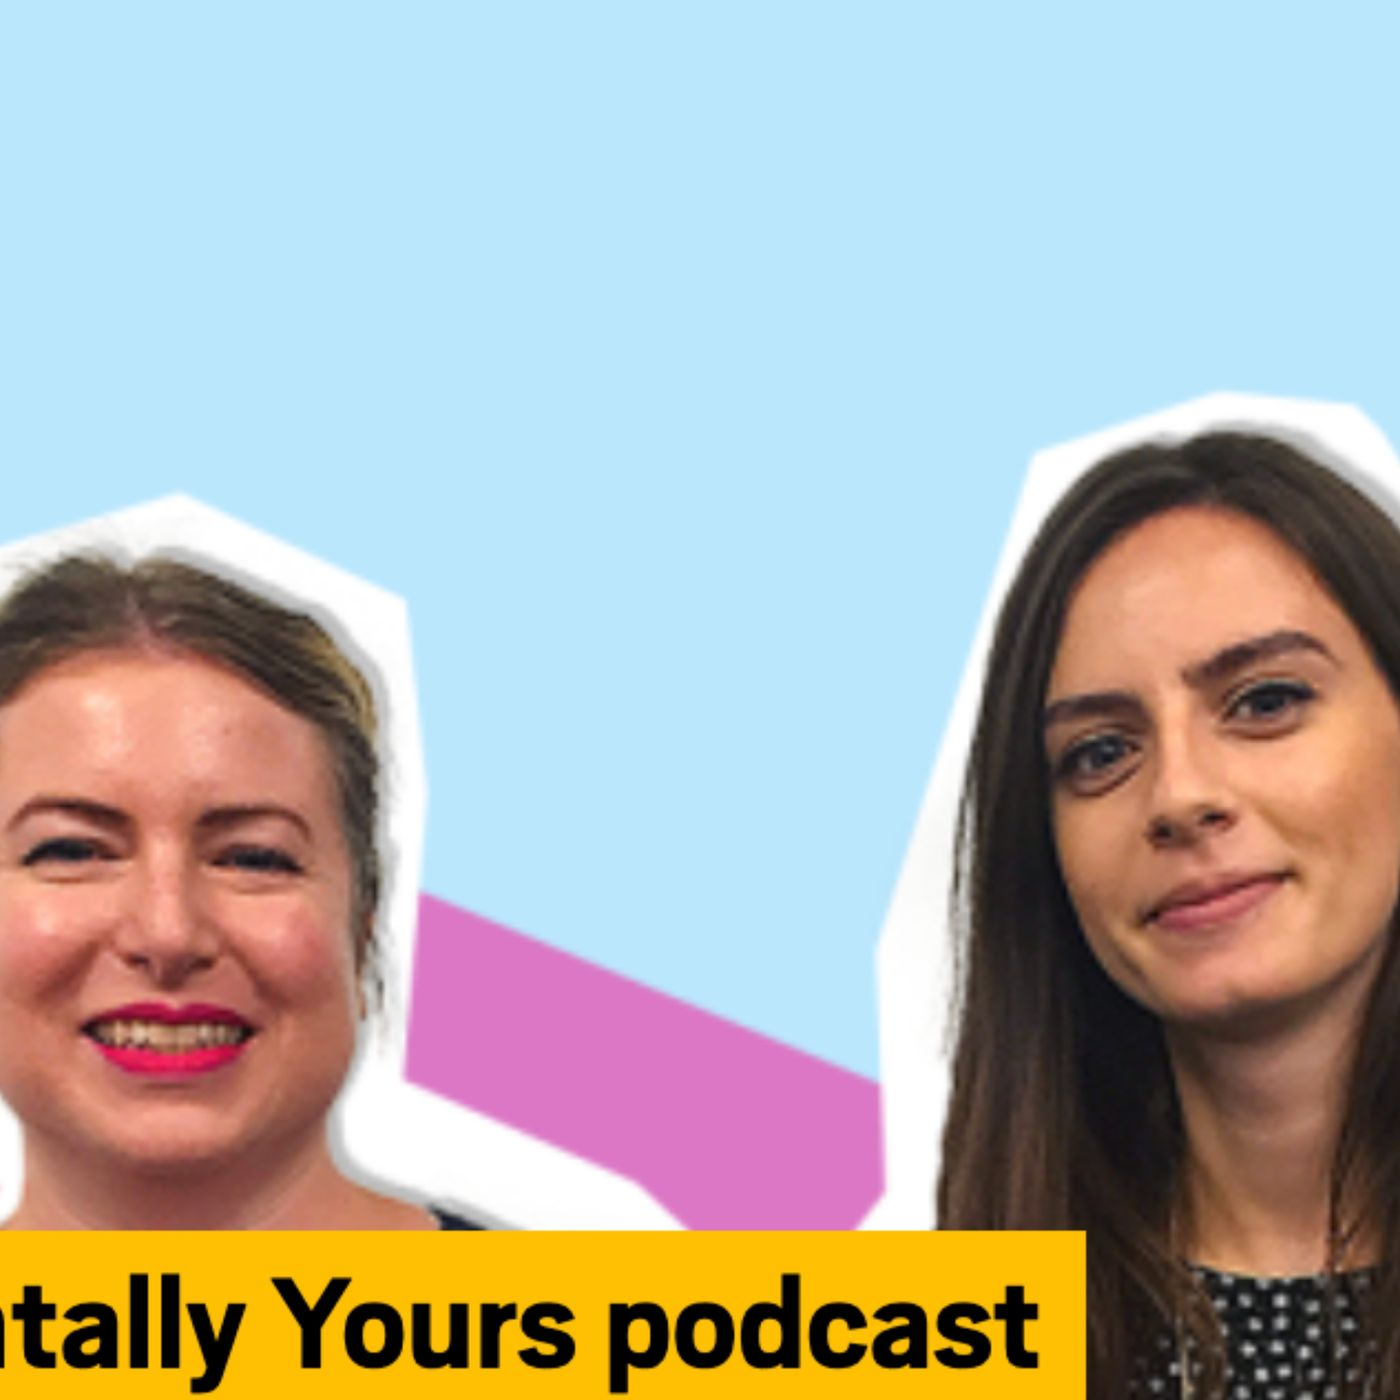 No Really, I'm Fine - Yvette Caster and Ellen Scott discuss what inspired them to start talking Mental Health out loud